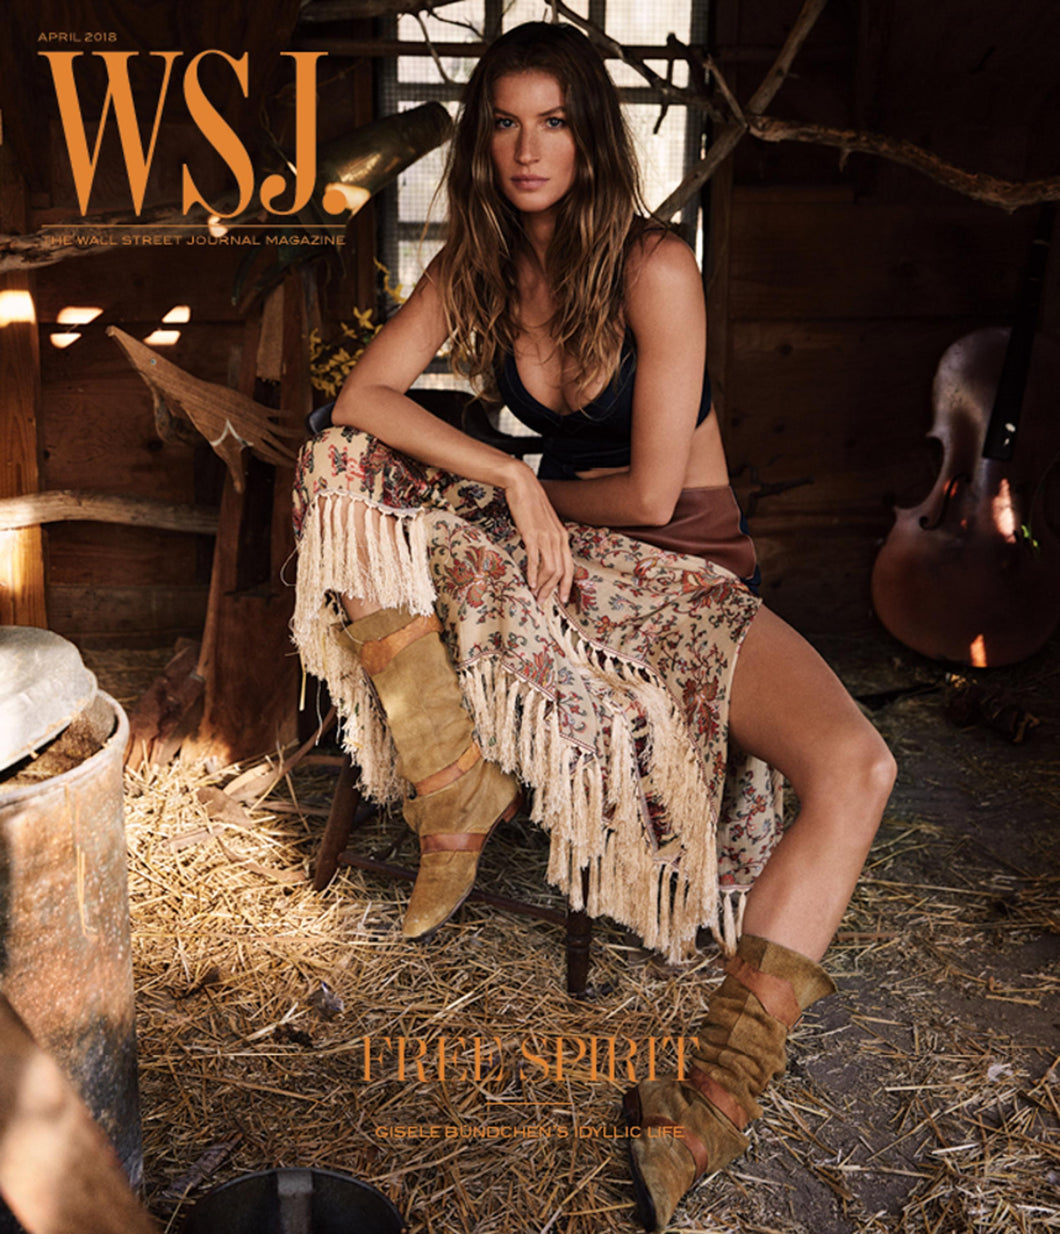 Gisele Bündchen | WSJ. Magazine cover April 2018